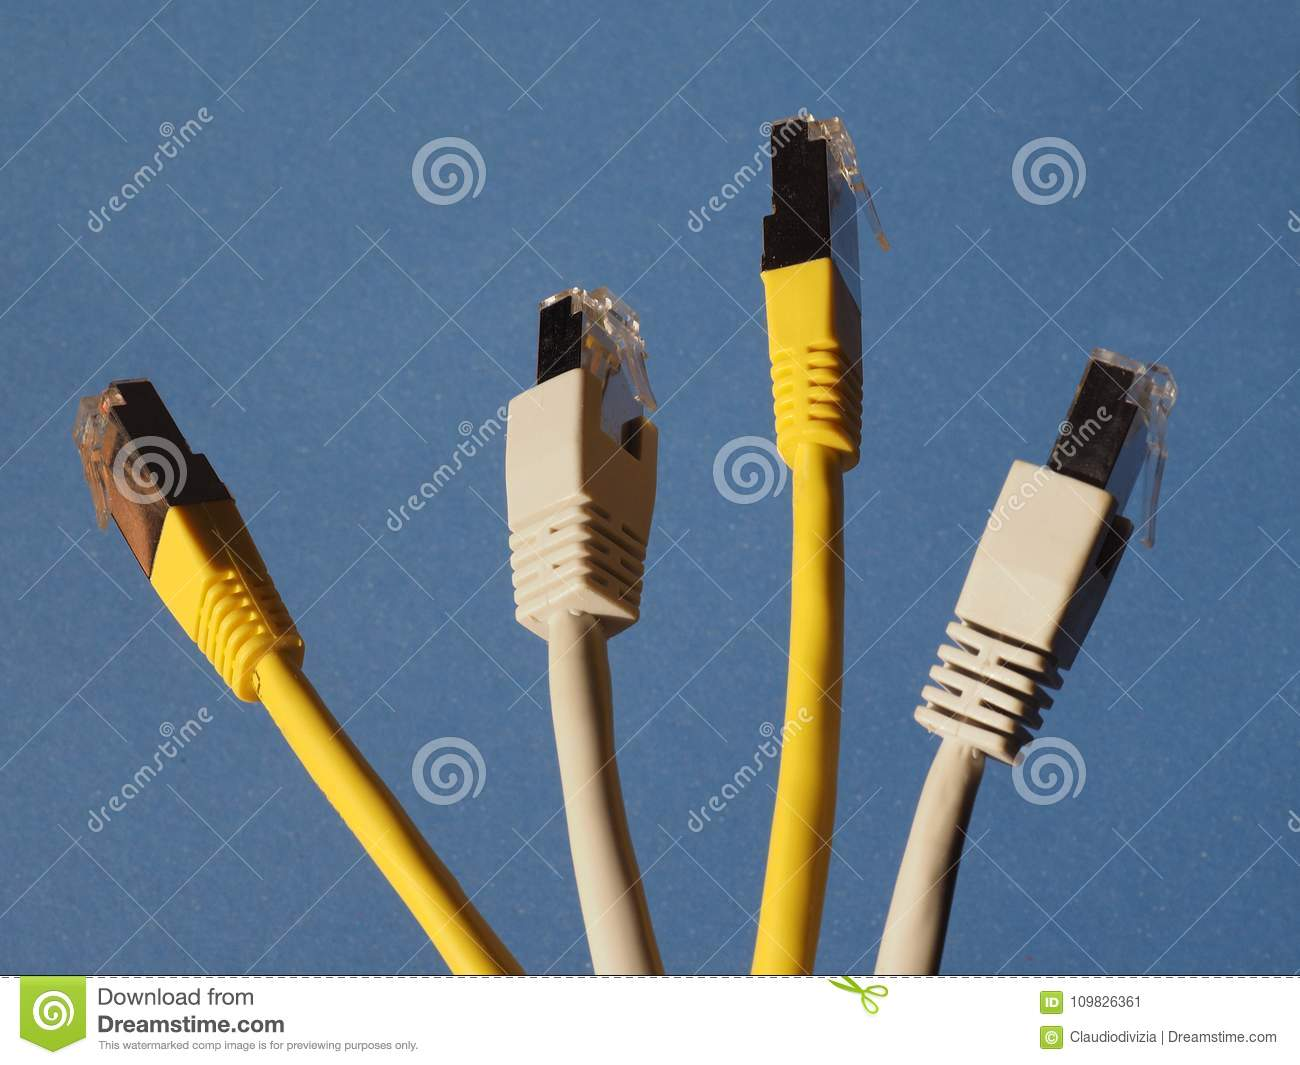 RJ45 ethernet plug stock image. Image of social, wire - 109826361